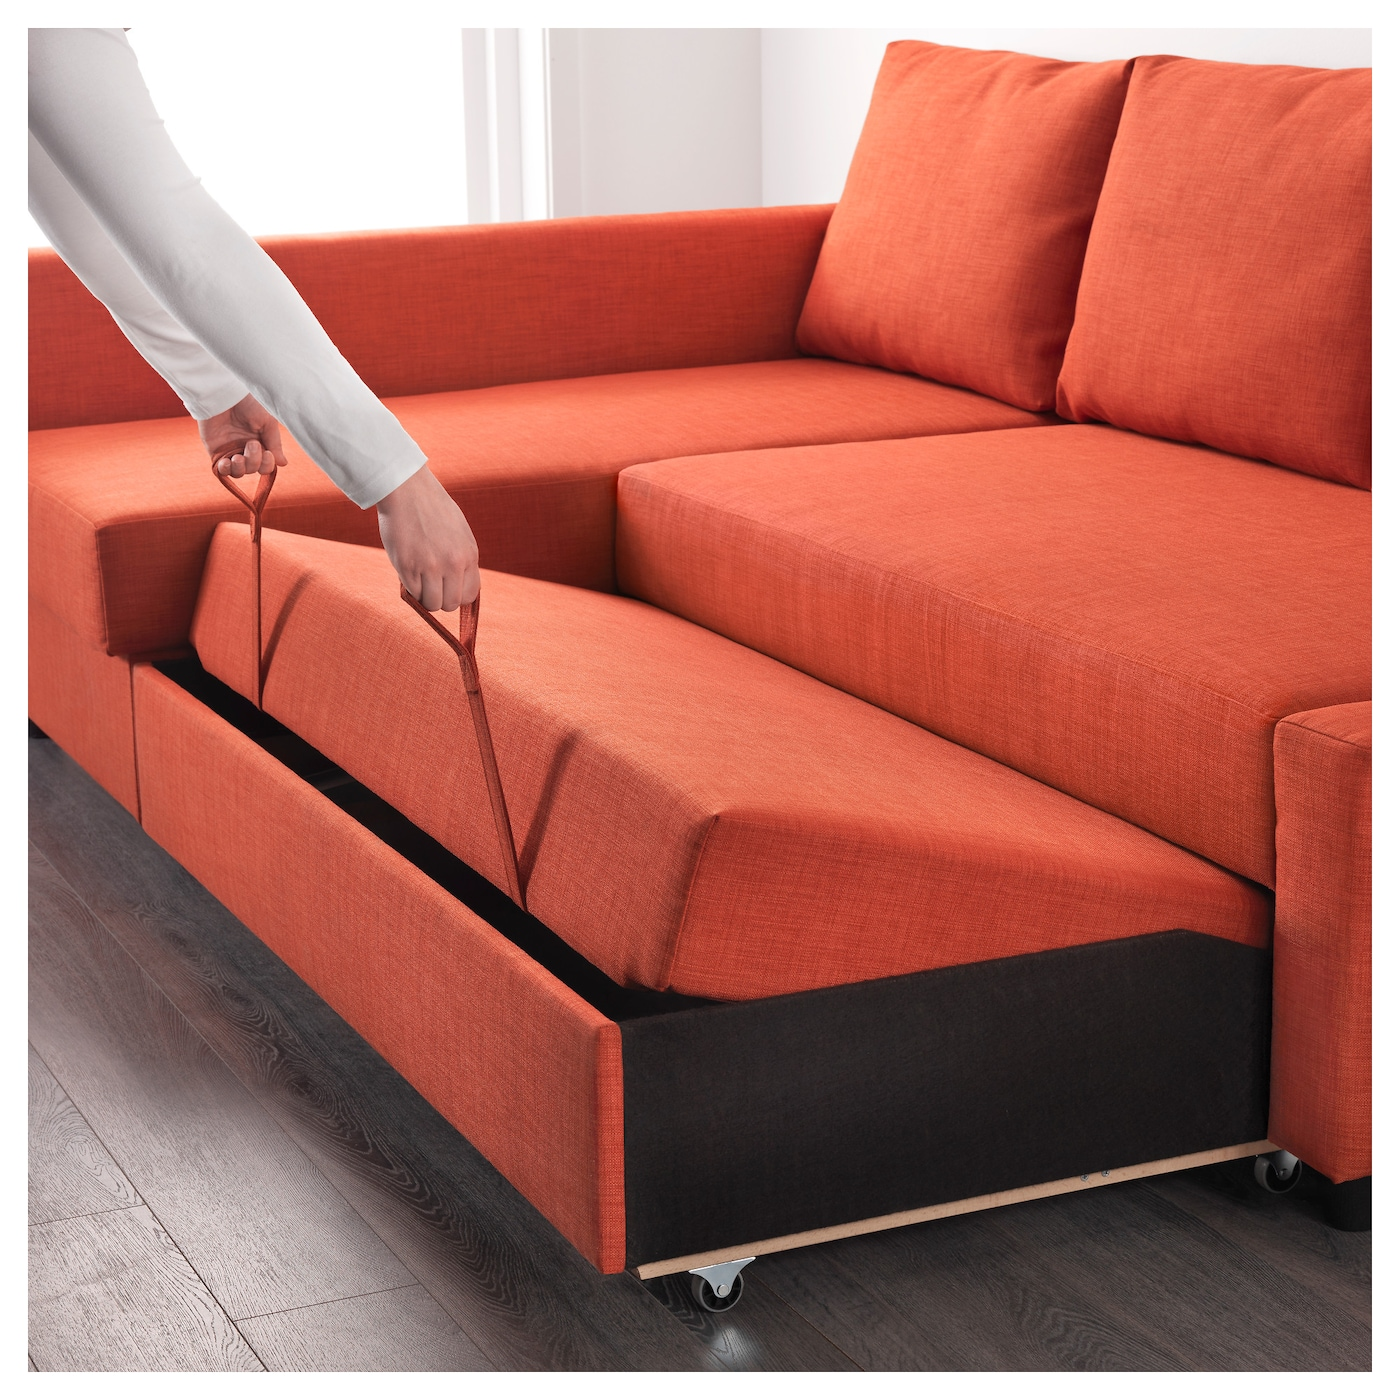 FRIHETEN Corner sofa bed with storage Skiftebo dark orange  : friheten corner sofa bed with storage skiftebo dark orange0455803pe603753s5 from www.ikea.com size 2000 x 2000 jpeg 1094kB